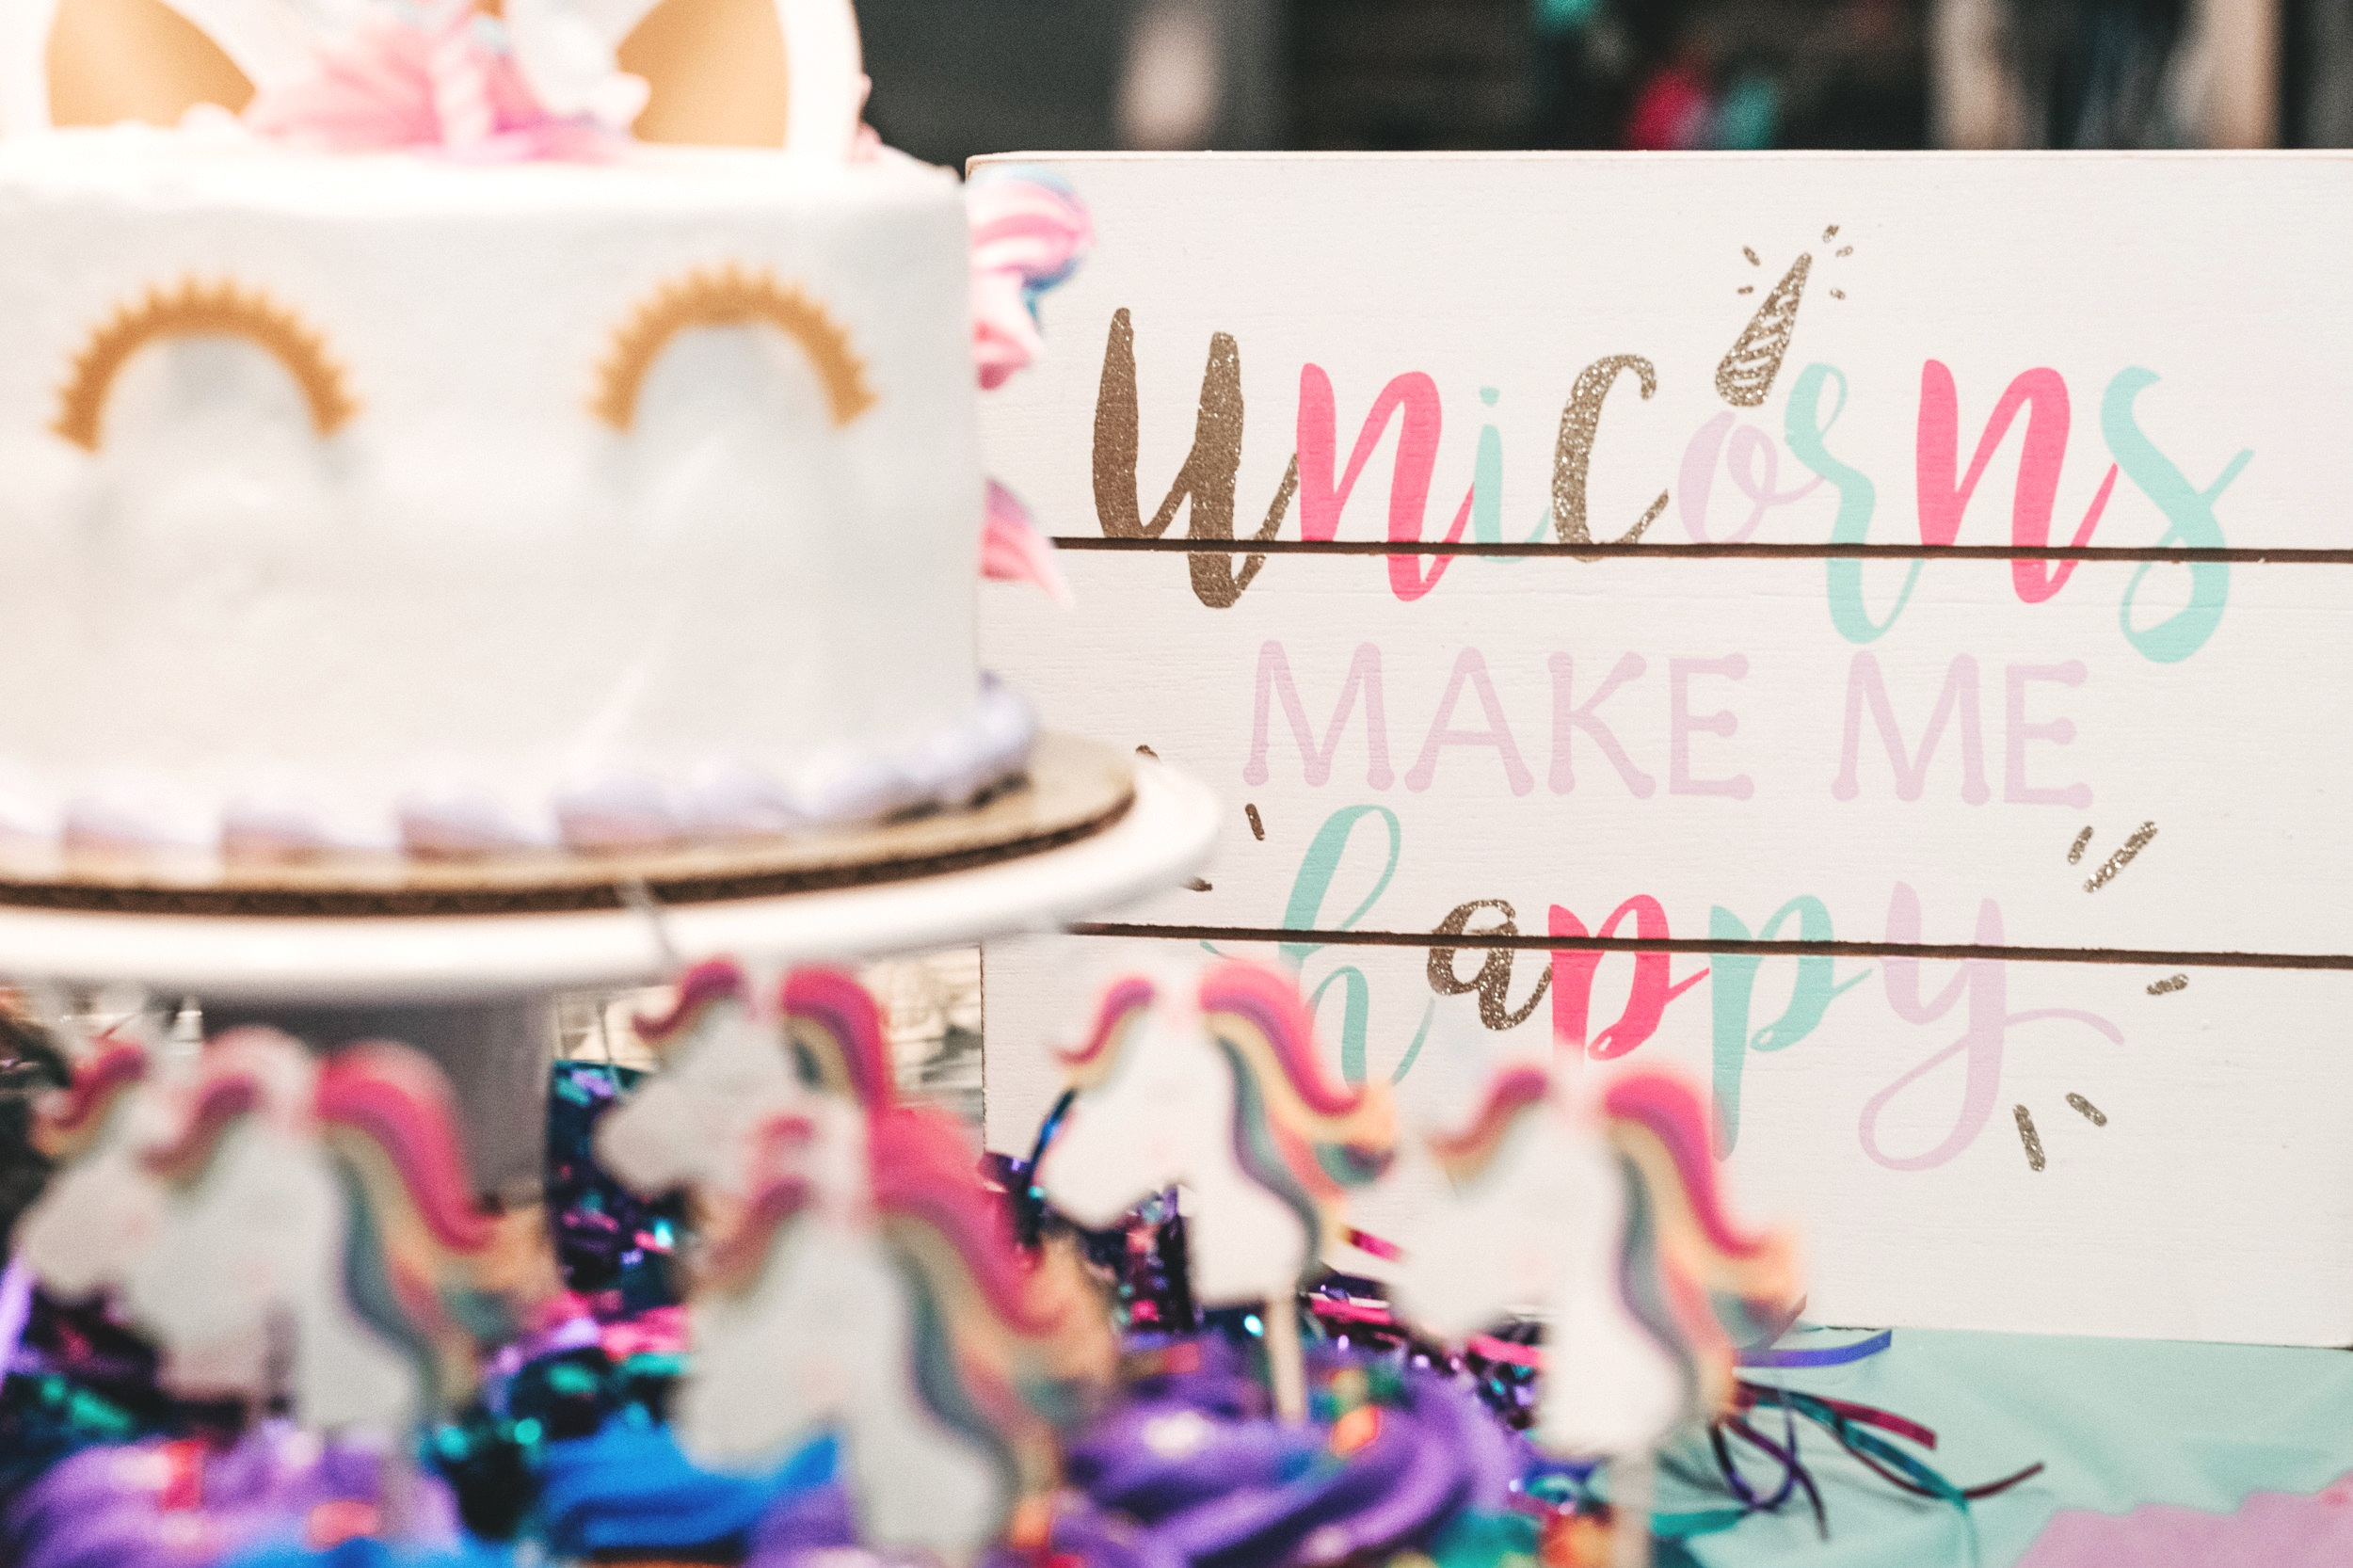 Unicorn Birthday Party, Planning a Unicorn Birthday, Top Unicorn Party Ideas. LYFETYMES is the #1 Party Planning Site. Plan Birthdays, Baby Showers, Bridal Showers, Holiday Parties for free at www.lyfetymes.com #partyplanning #planaparty #kidsbirthdayideas #partyideas #unicornparty